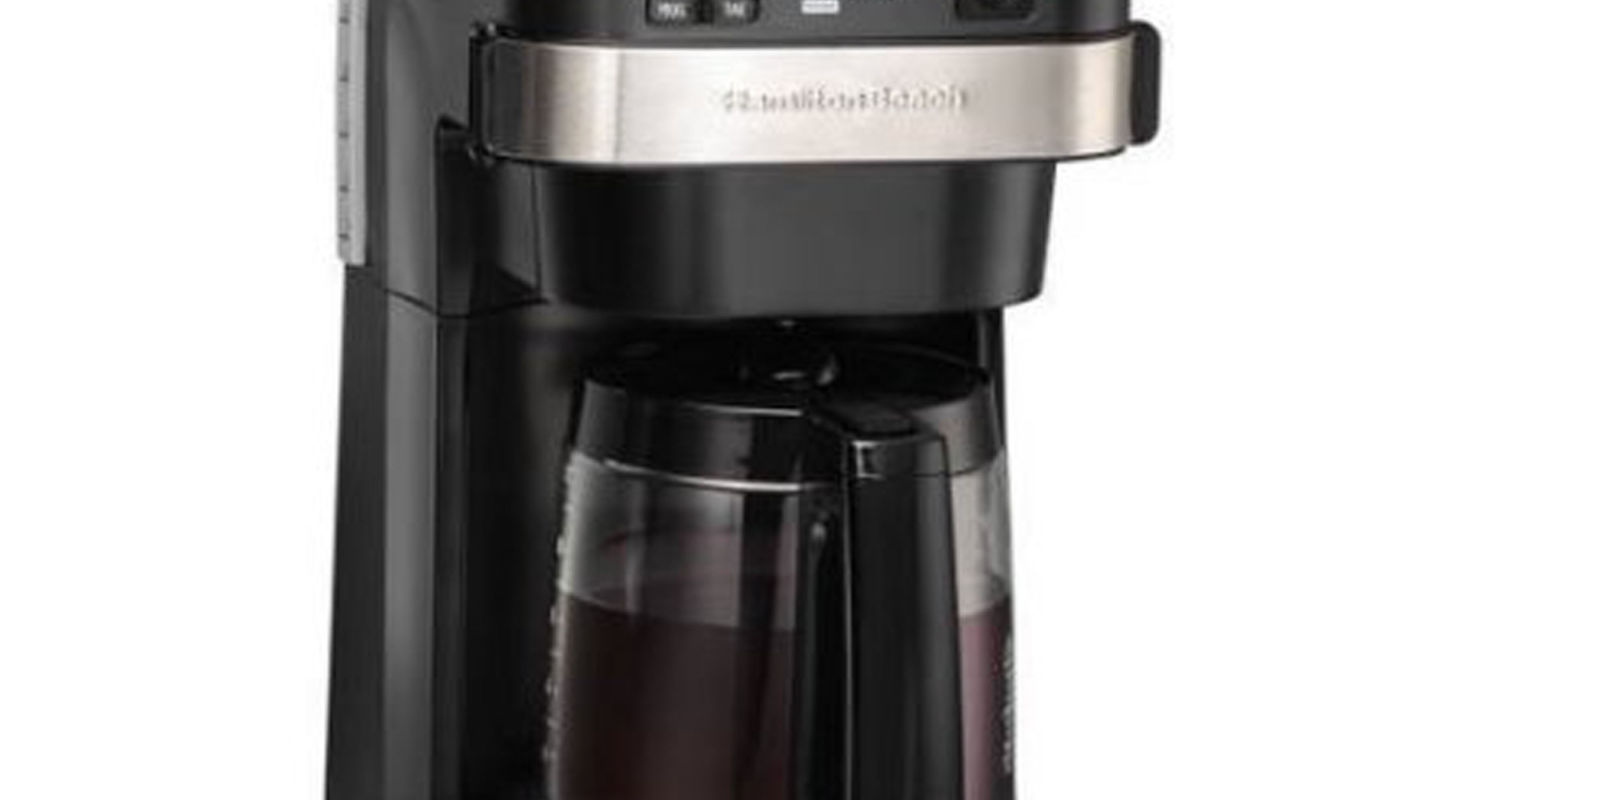 Hamilton Kitchen Appliances Hamilton Beach Programmable Easy Access 12 Cup Coffeemaker Review